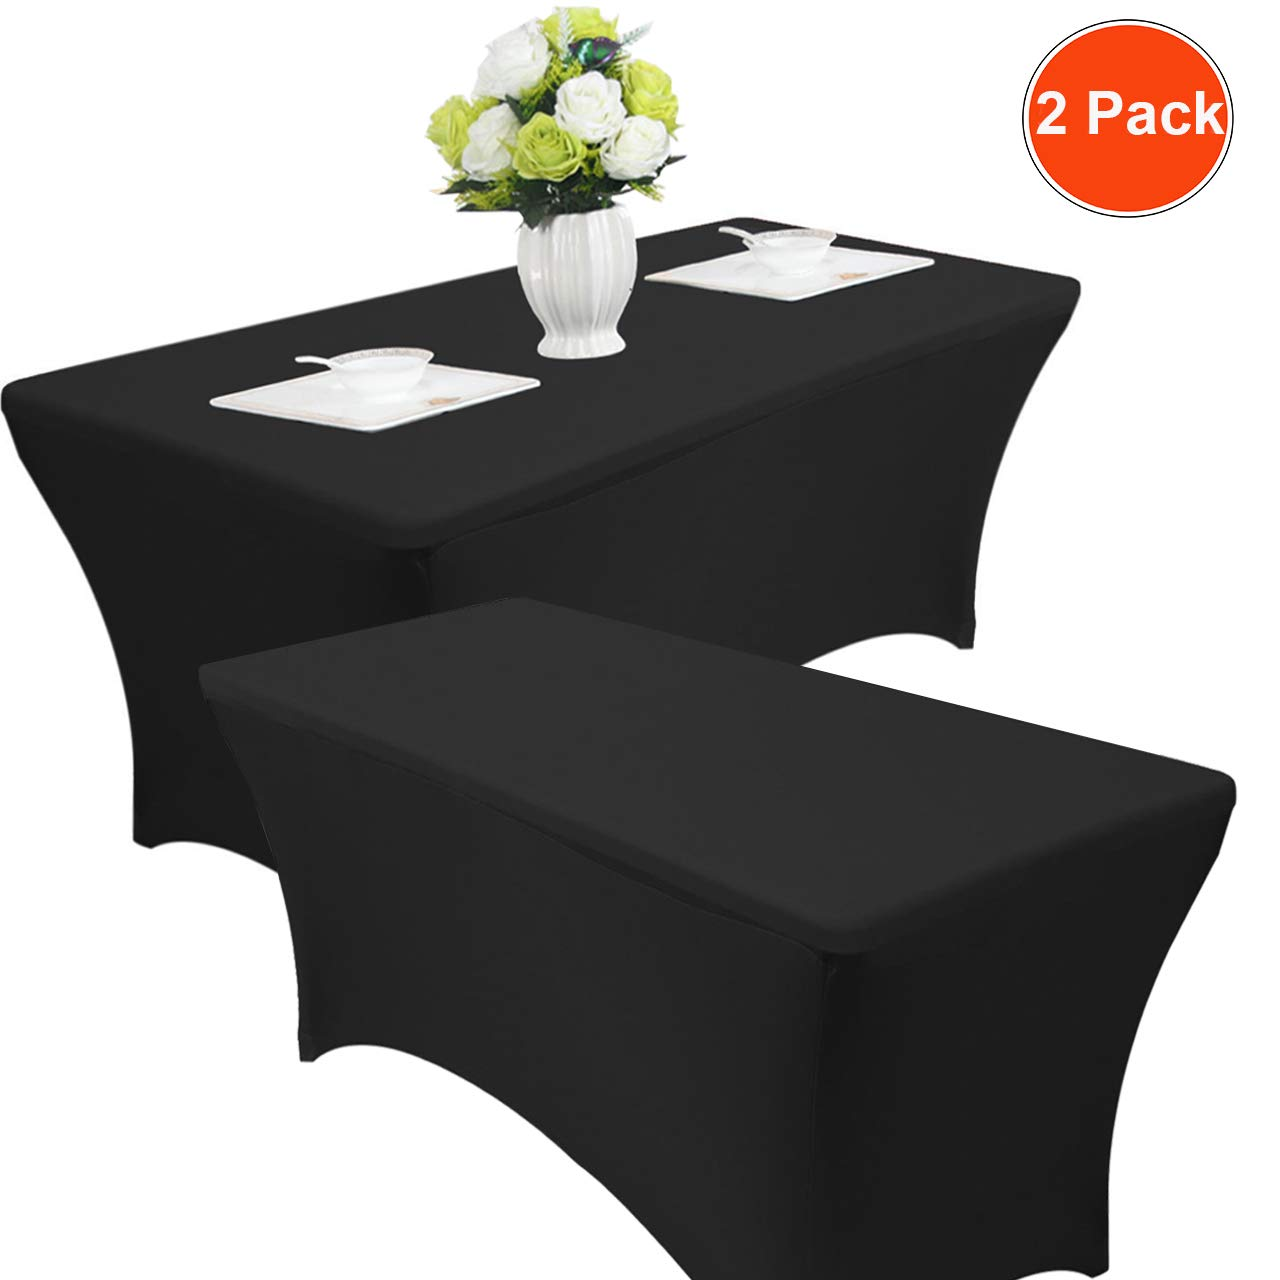 Reliancer 2 Pack 48FT Rectangular Spandex Table Cover Four-Way Tight Fitted Stretch Tablecloth Table Cloth for Outdoor Party DJ Tradeshows Banquet Vendors Weddings Celebrations (6FT, Black) by Reliancer (Image #2)